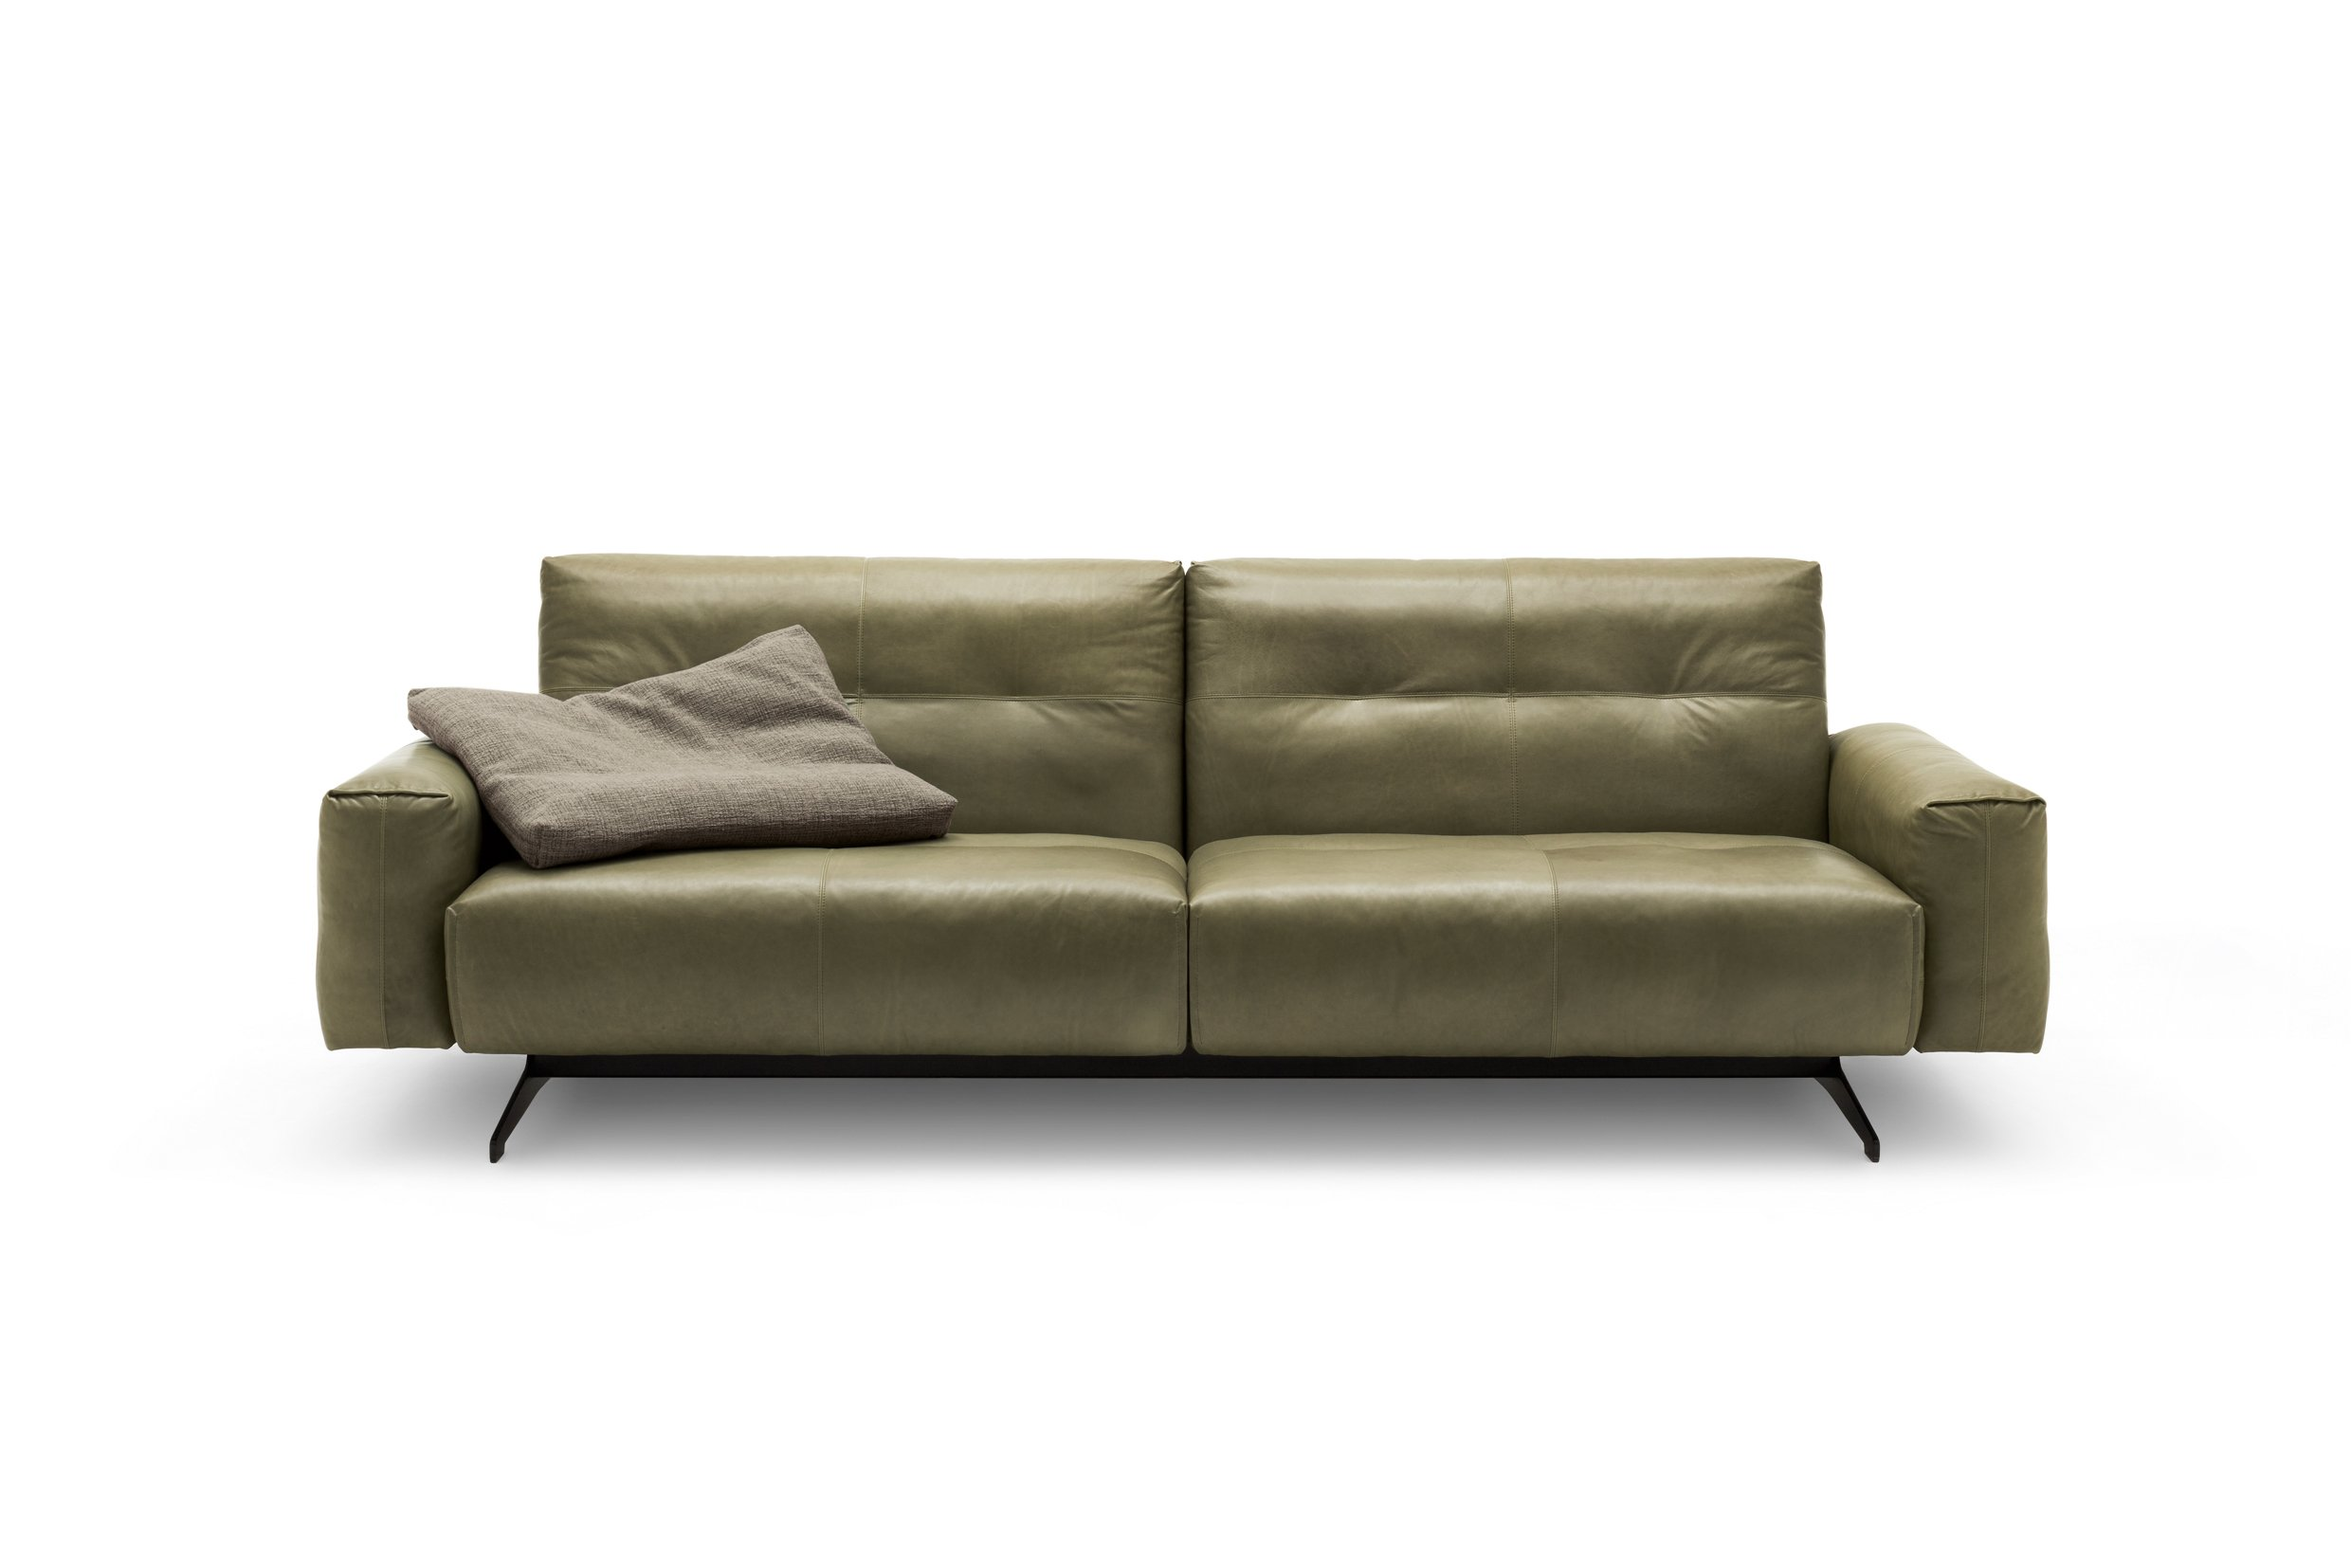 Rolf Benz 50 Leather Sofa By Rolf Benz Design Norbert Beck